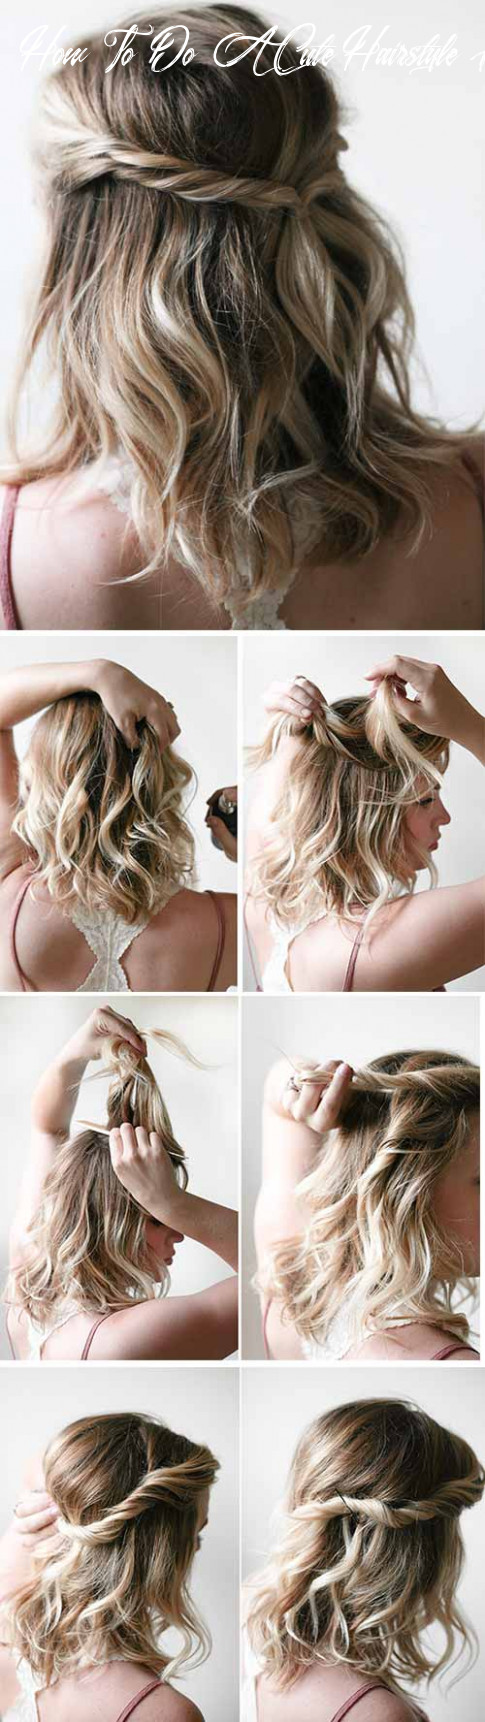 11 incredible diy short hairstyles a step by step guide how to do a cute hairstyle for short hair